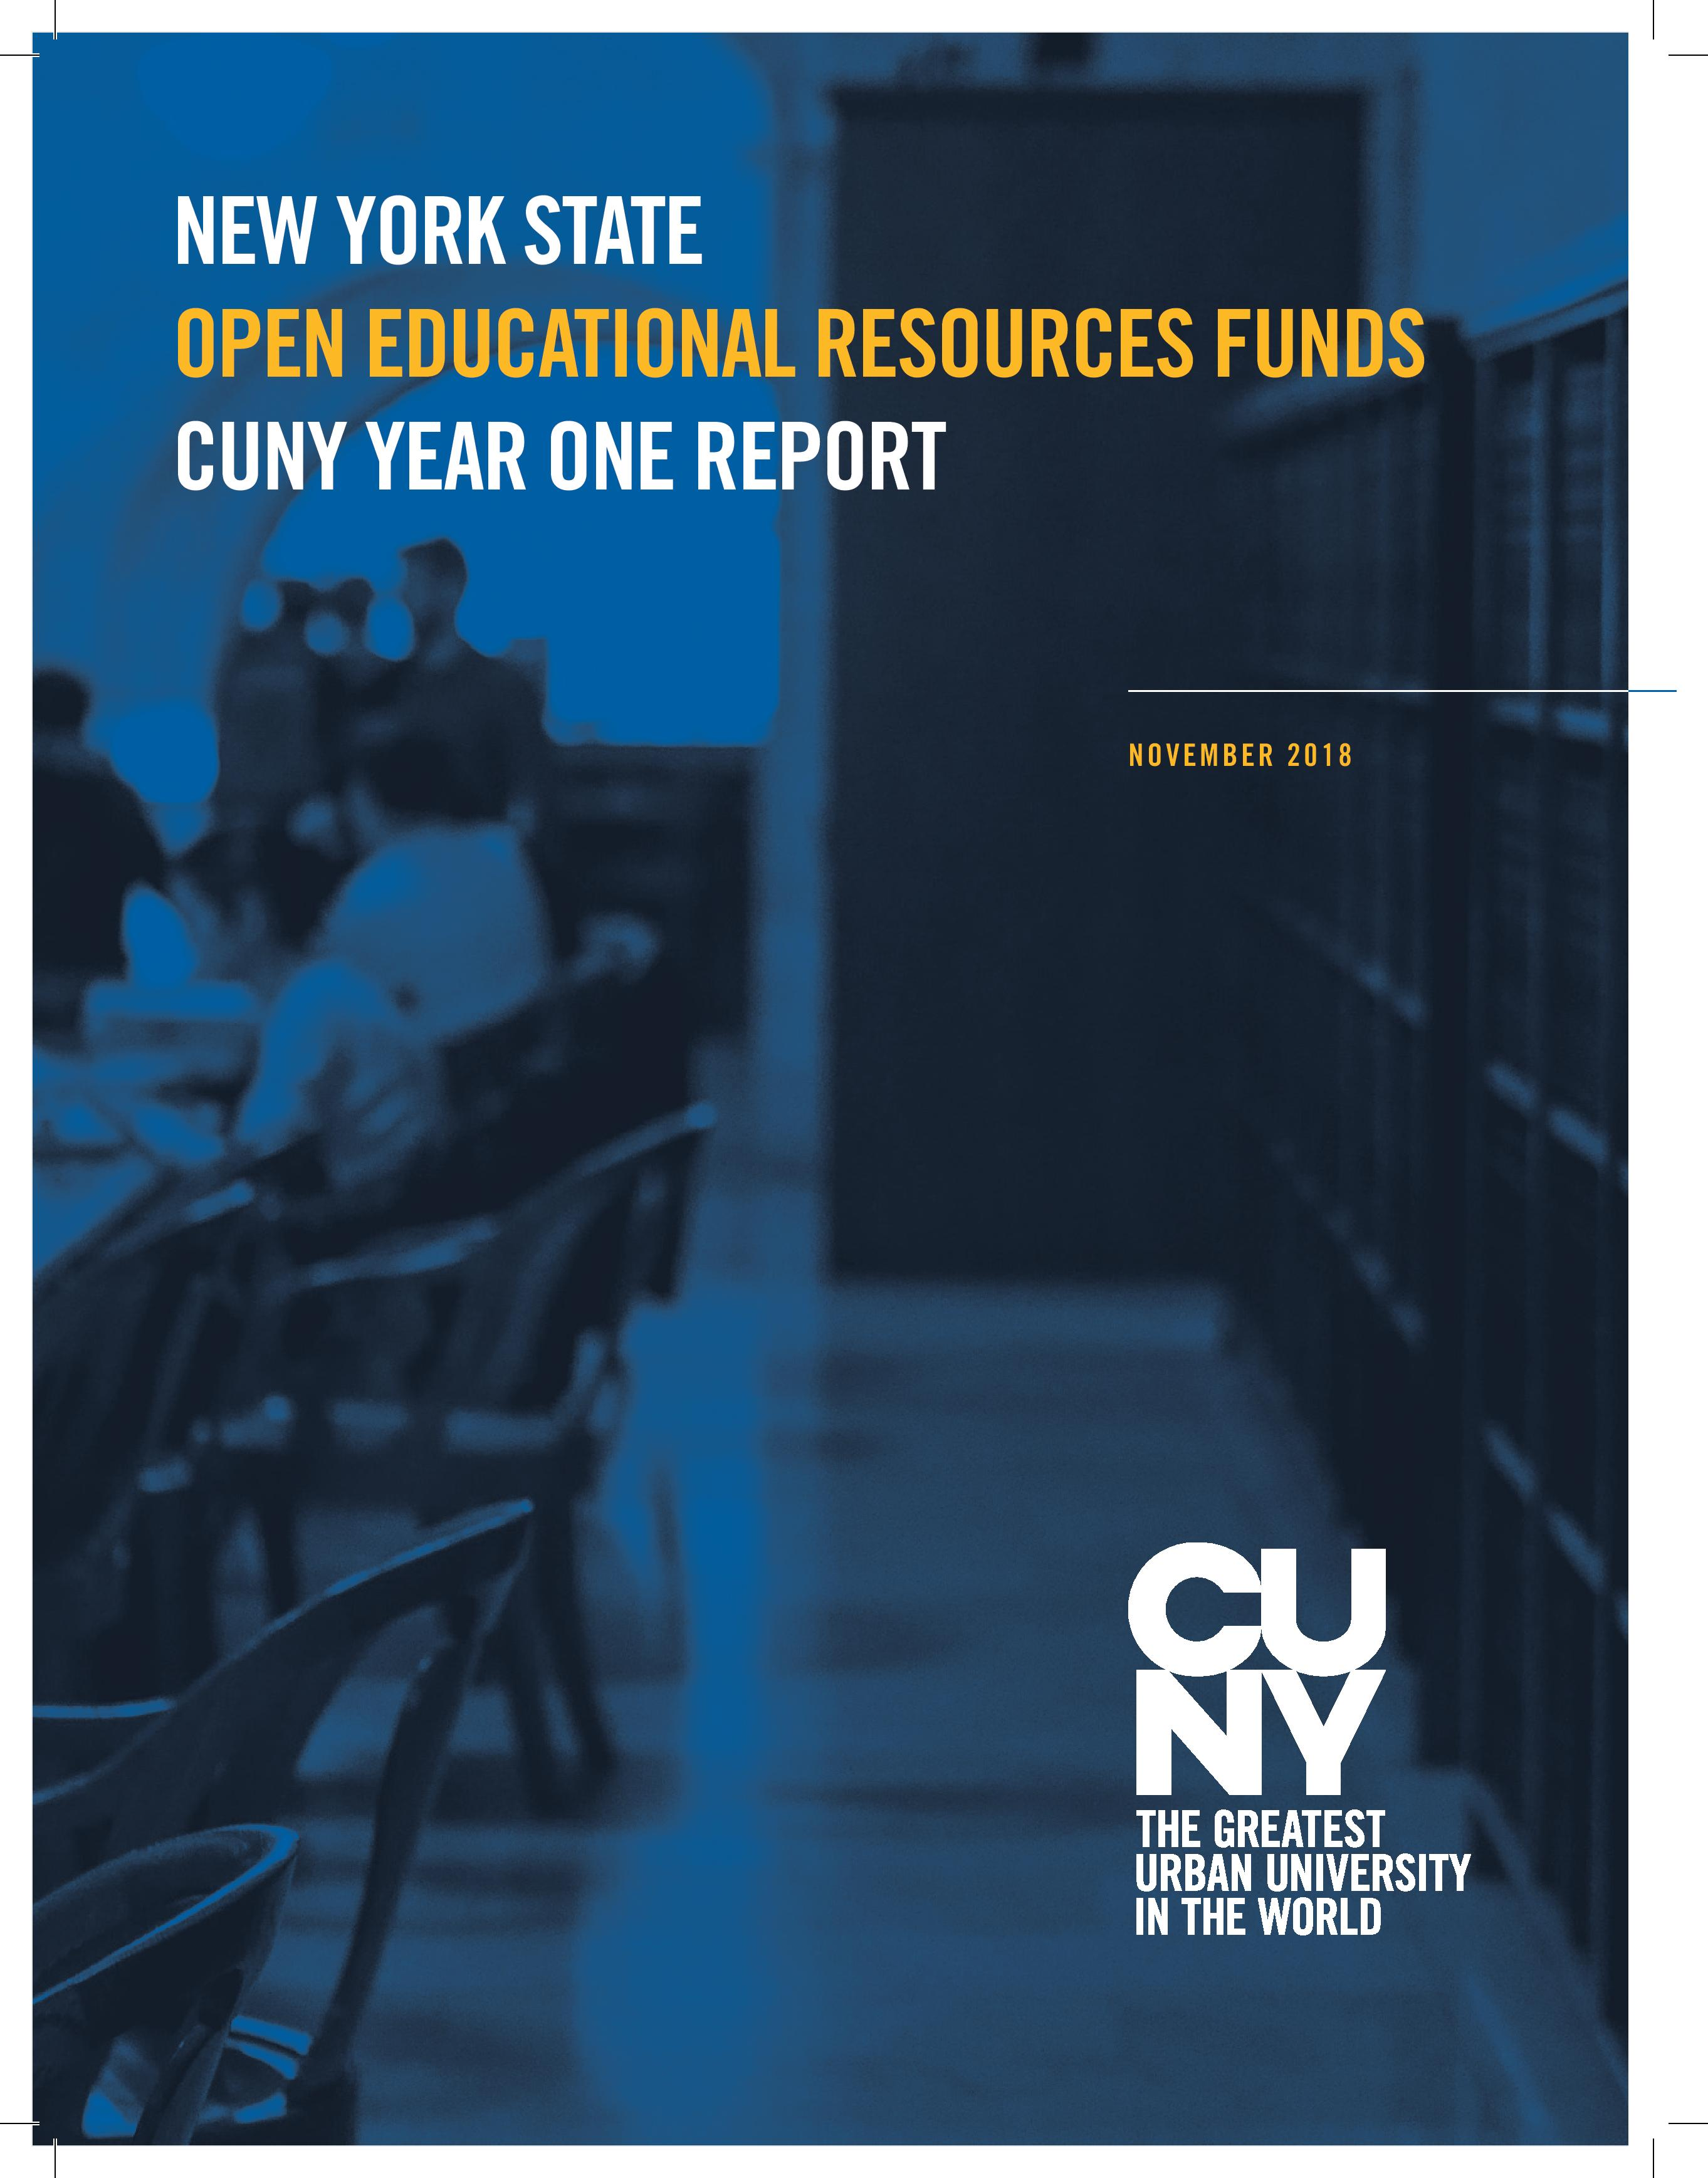 CUNY Report page 1